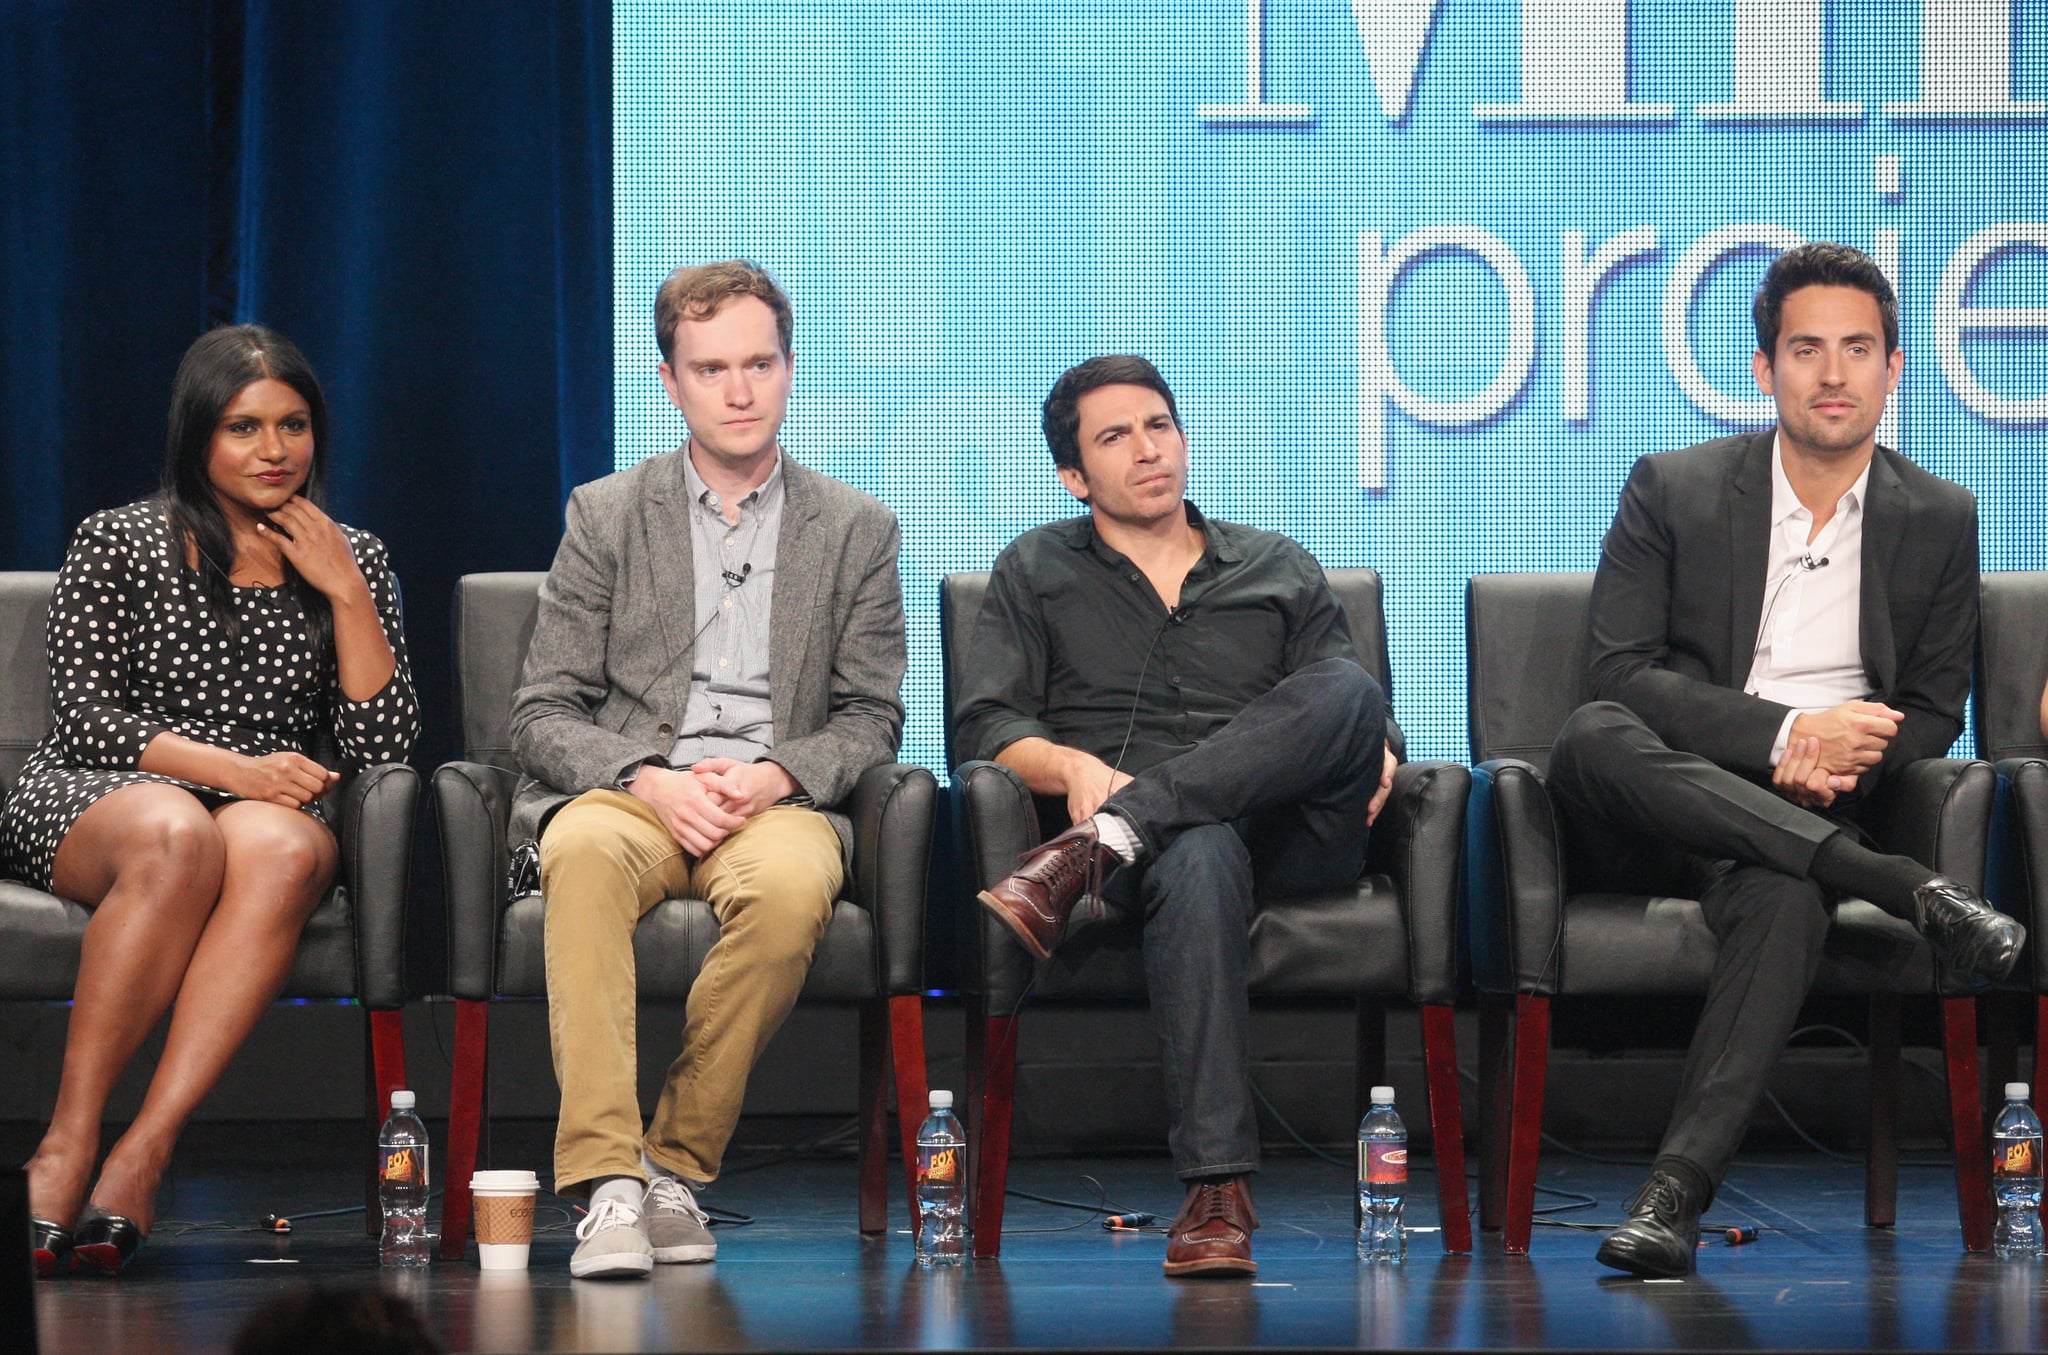 Chris Messina and Ed Weeks play Kaling&#039;s fellow doctors on The Mindy Project.</p> <p>